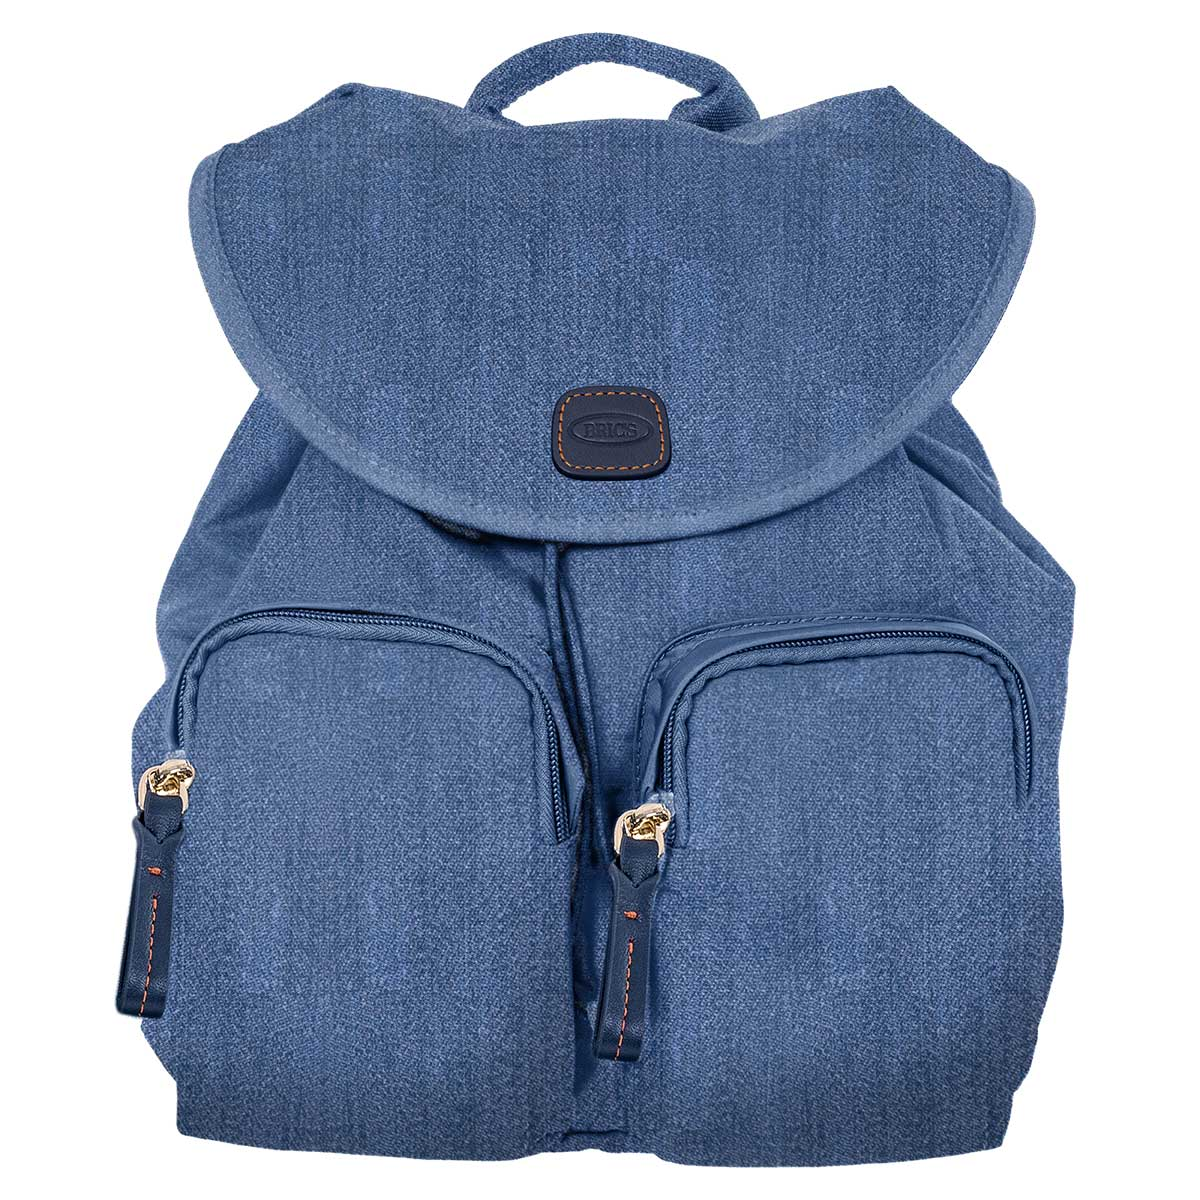 X-Bag Small City Backpack - Jean Blue | BRIC'S Travel Bags